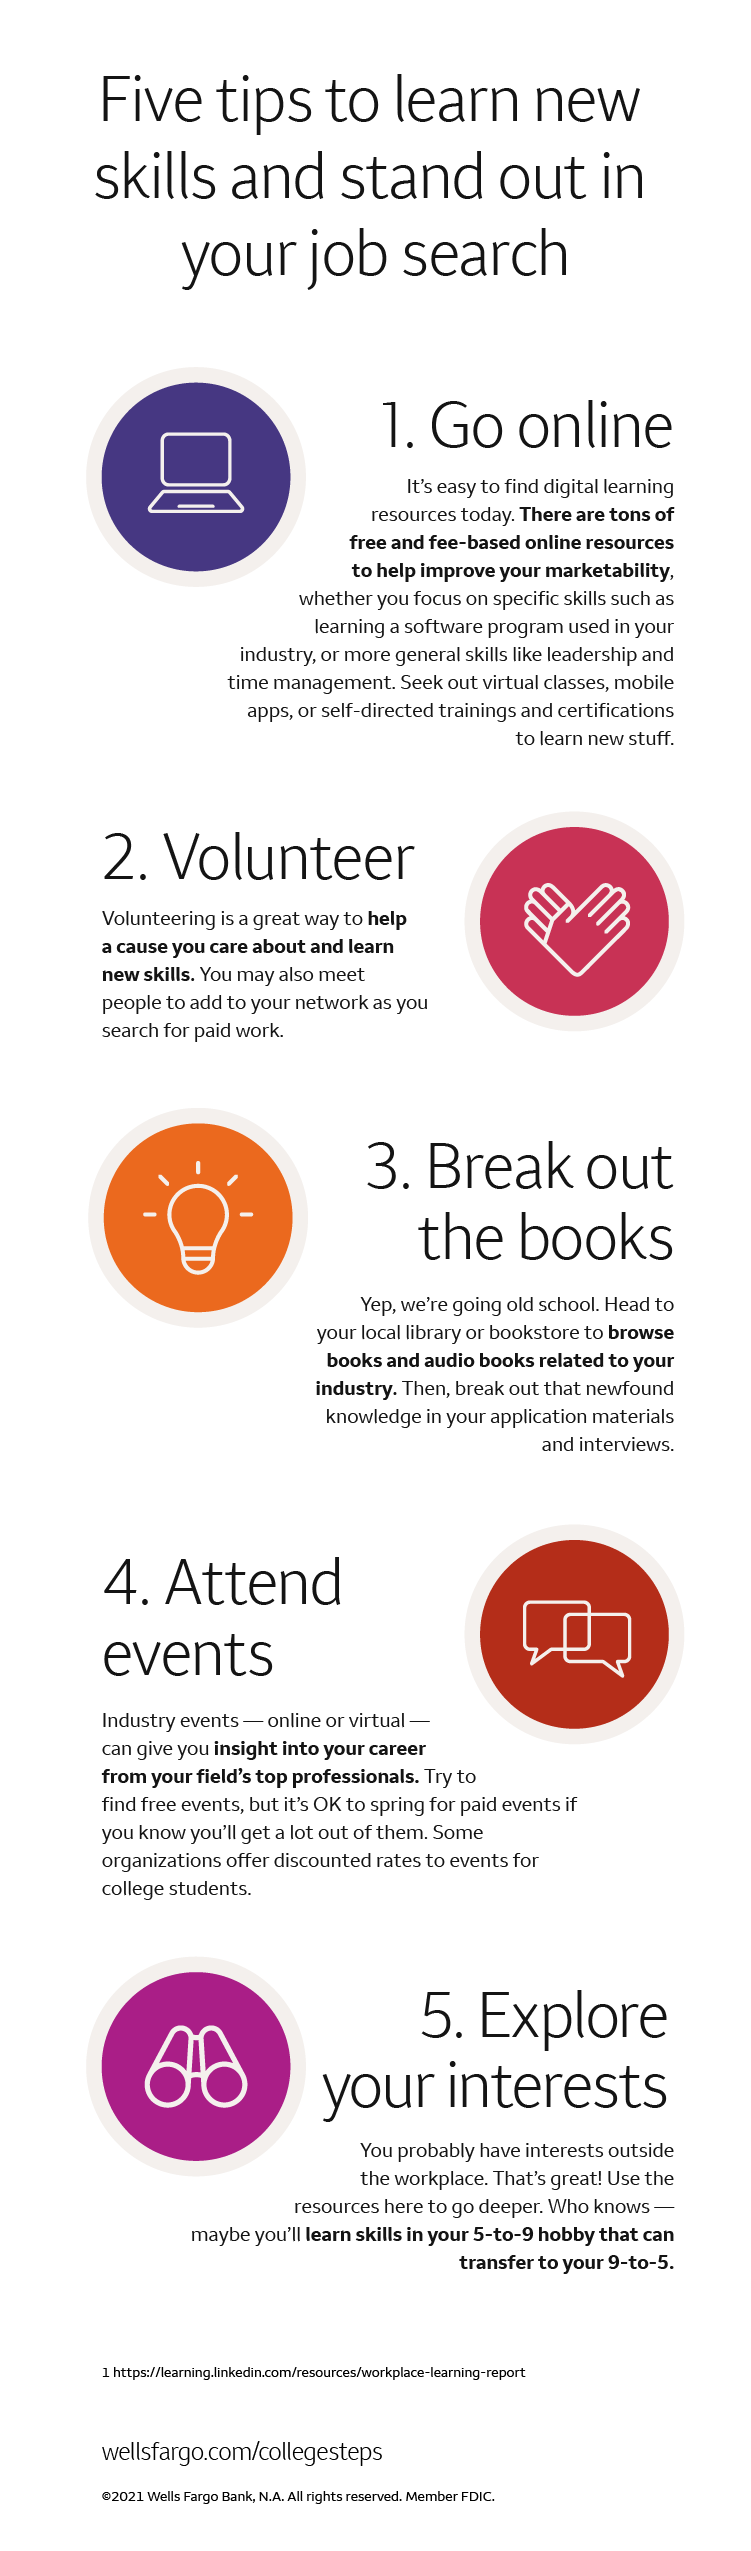 Infographic with ideas to learn new skills